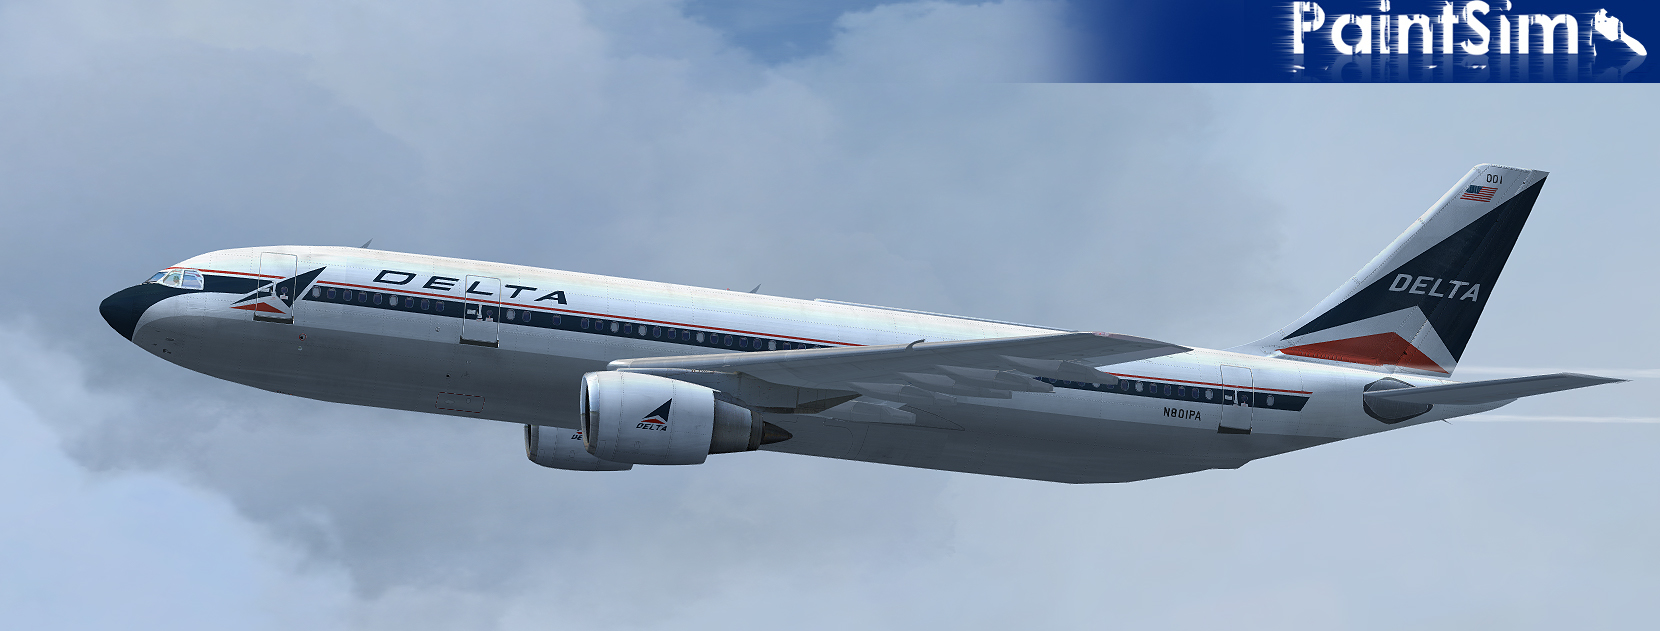 PAINTSIM - HD TEXTURE PACK 17 FOR SIMCHECK AIRBUS A300B4-200 FSX